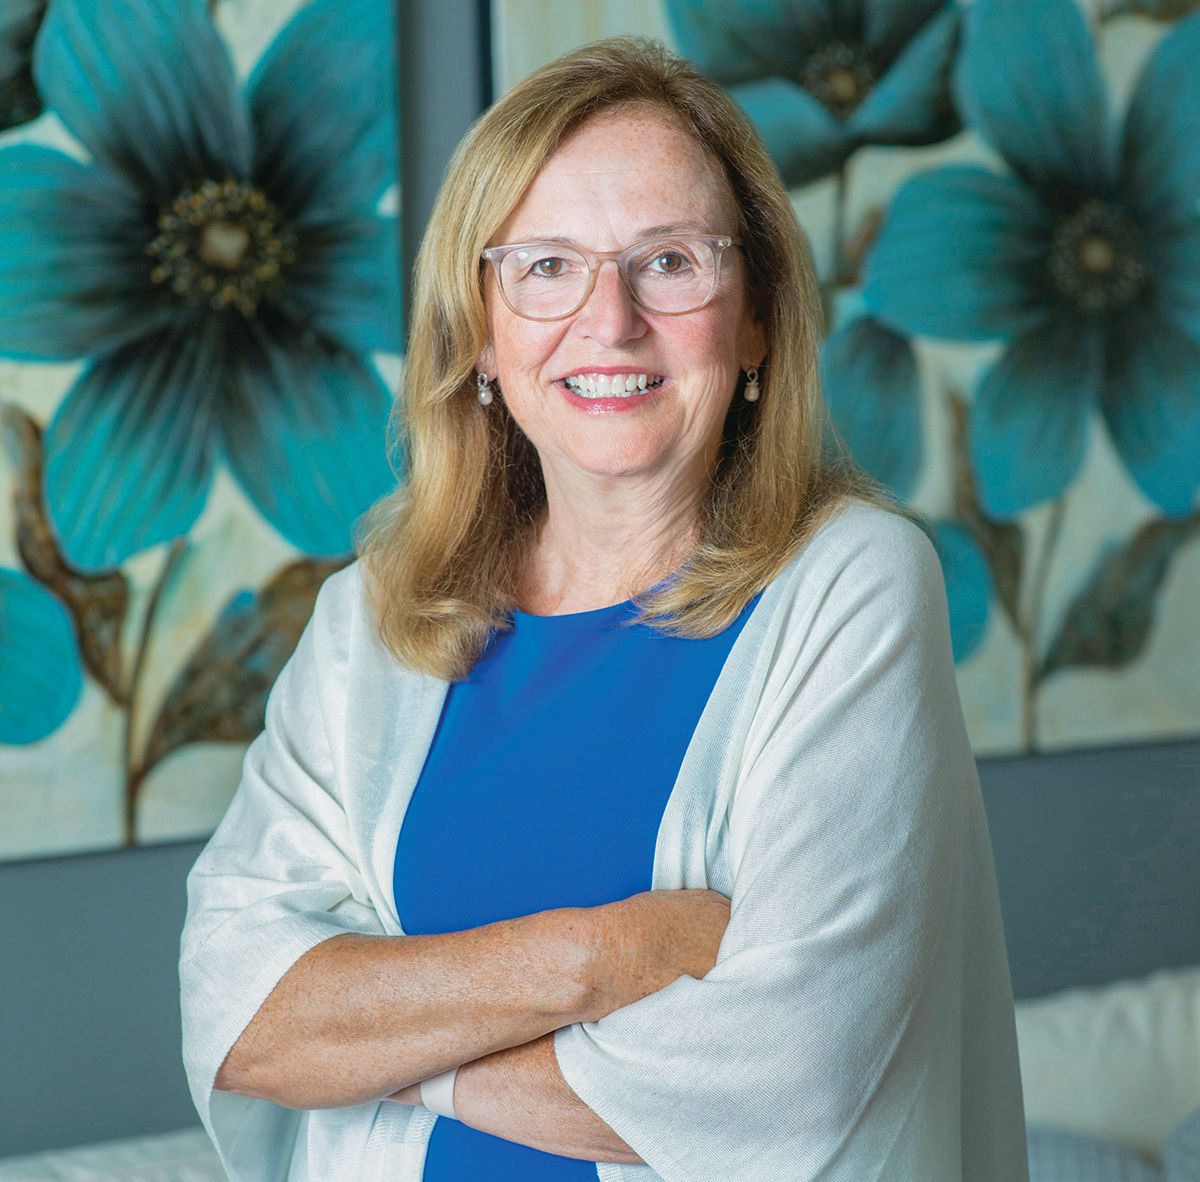 """EARLY CALLING: Brenda Seagrave-Whittle, chief marketing officer at Neighborhood Health Plan of Rhode Island, says she knew from an early age that she was """"born to protect, support and advocate for people"""" and that her purpose in life was to """"stand up for others and give them a voice."""" / COURTESY HUGHES FIORETTI PHOTOGRAPHY"""